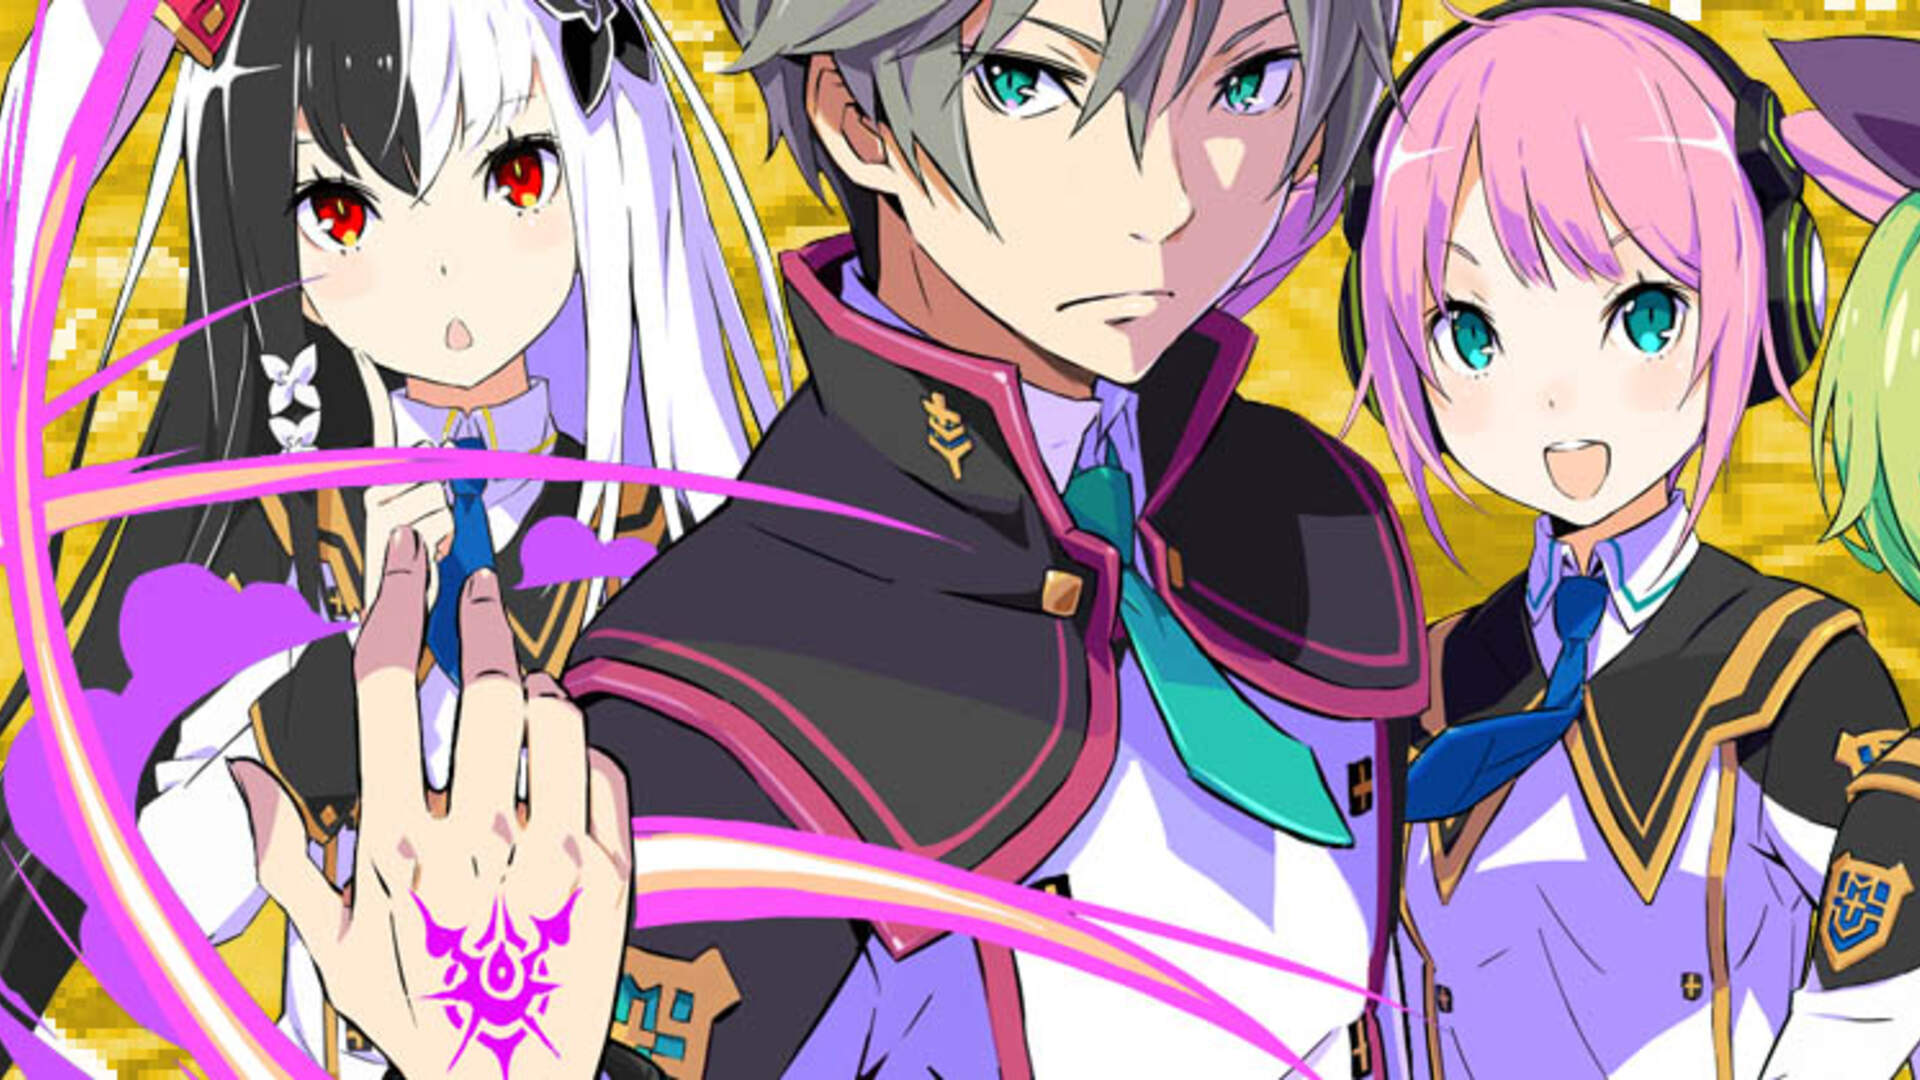 Is Conception II Really Like Persona? (No, Not Really)